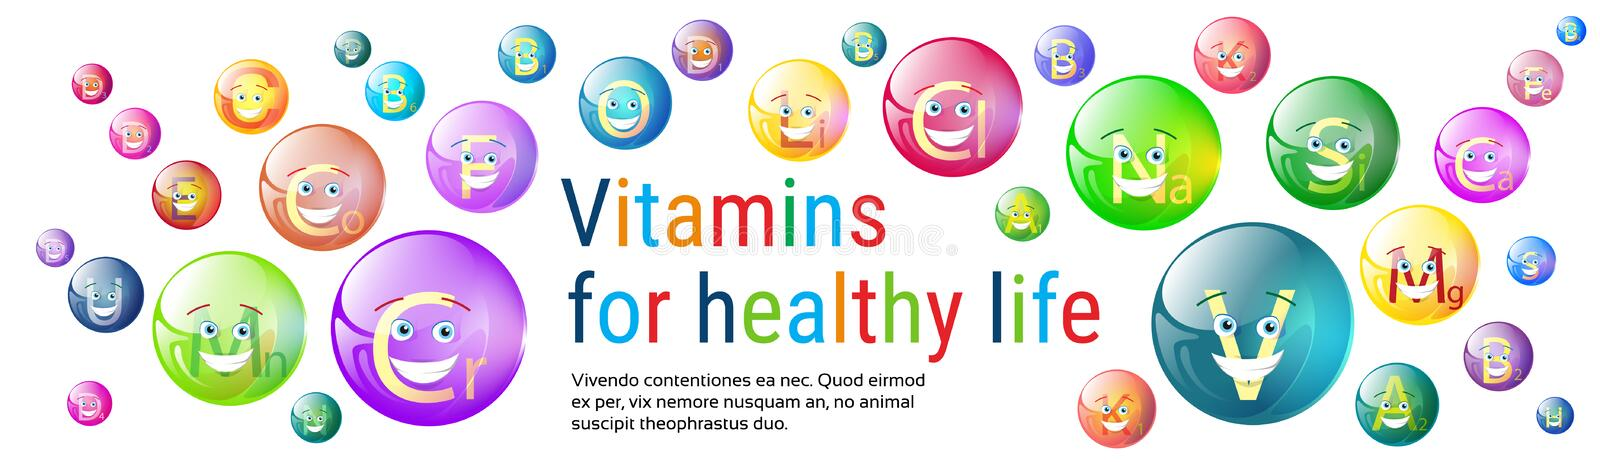 Vitamins Nutrient Minerals Colorful Banner Healthy Life Nutrition Chemistry Element Concept. Flat Vector Illustration royalty free illustration